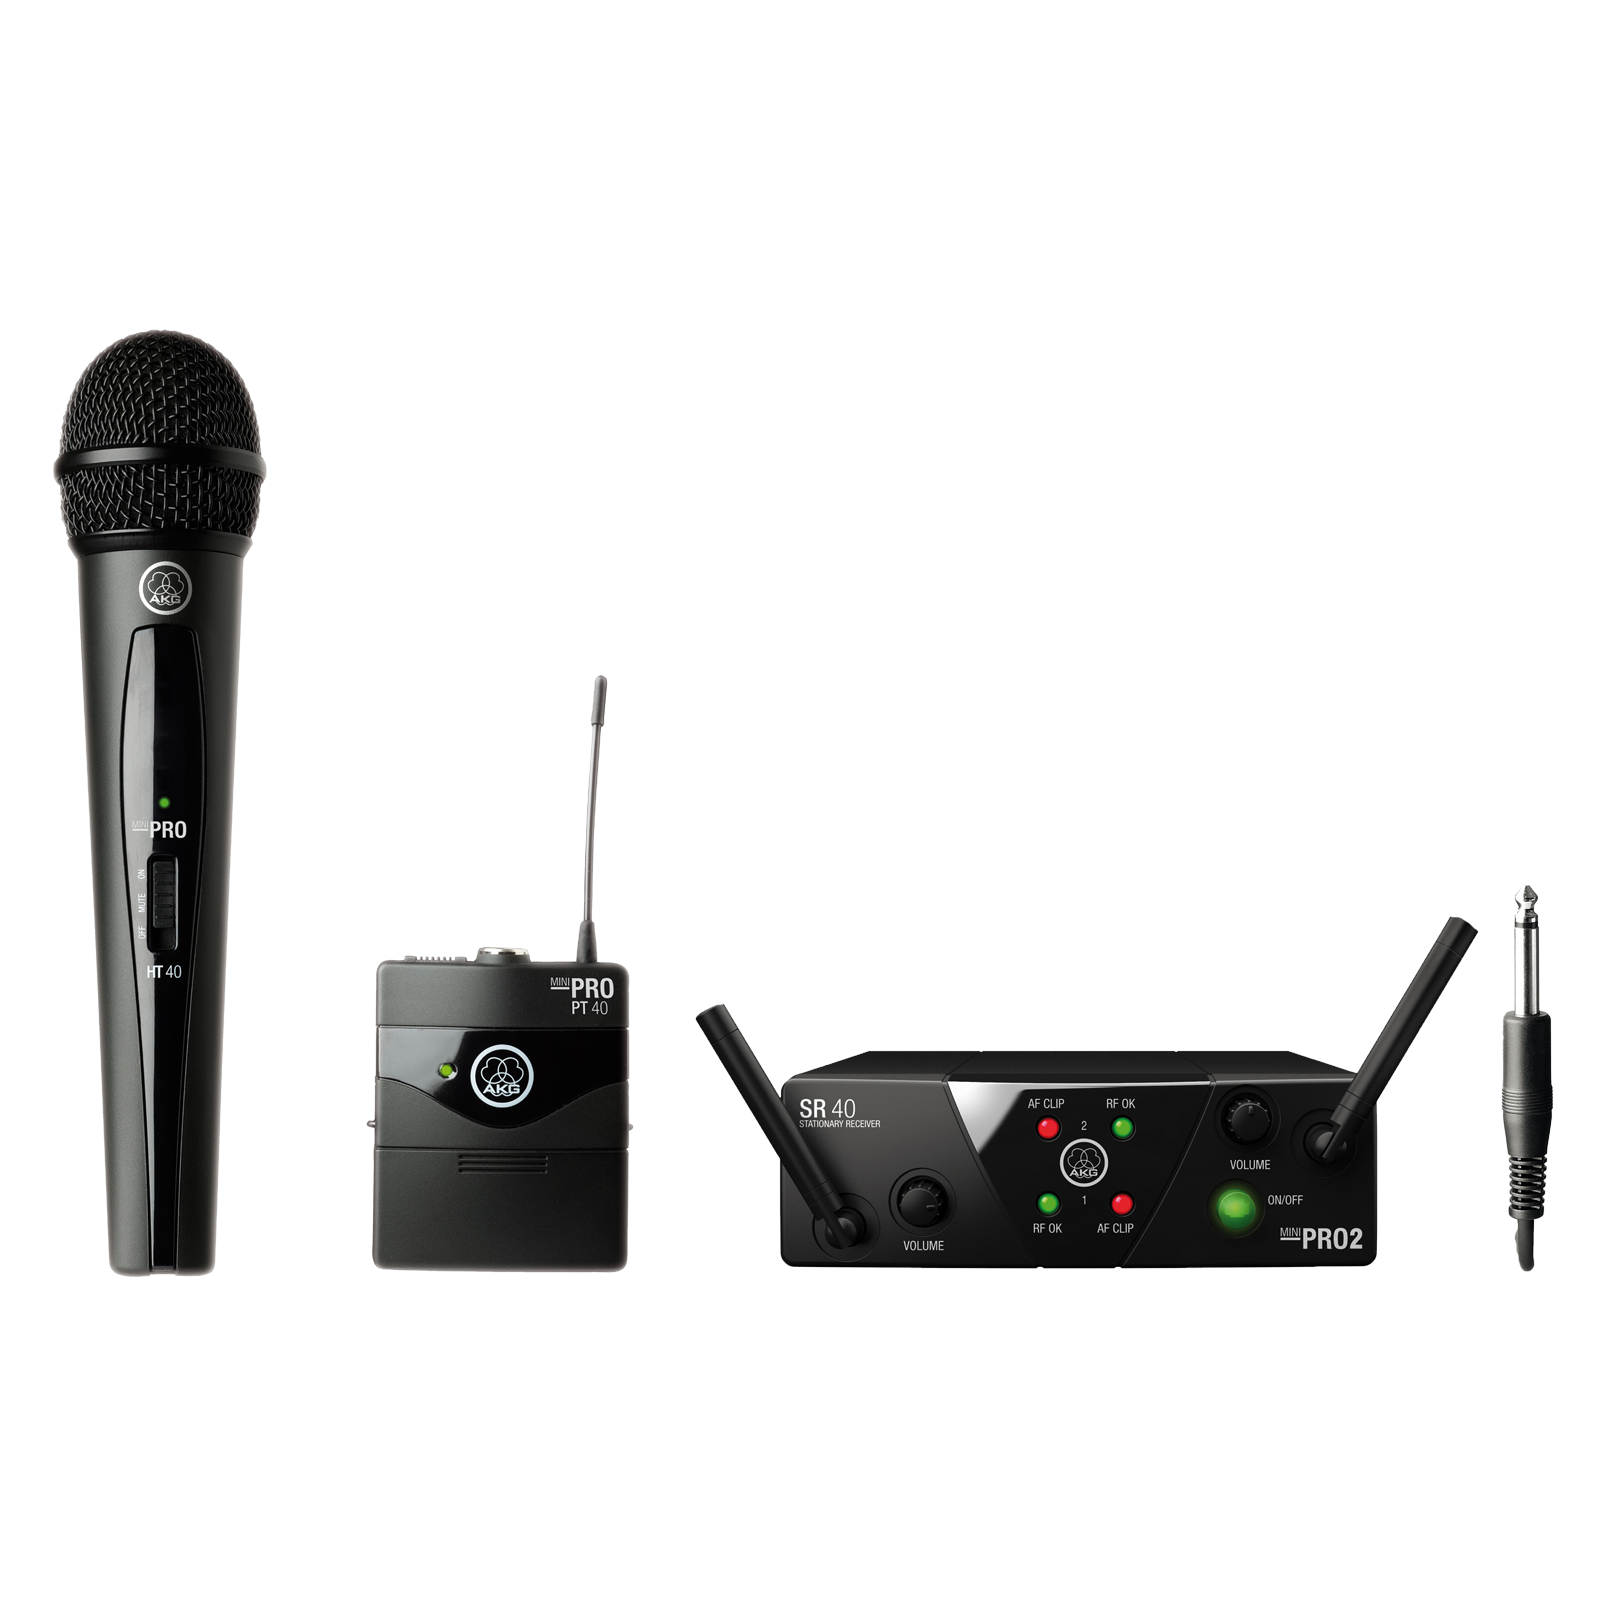 WMS40 Mini Dual Vocal Instrumental Set Band-US25-A/C - Black - Wireless microphone system - Hero